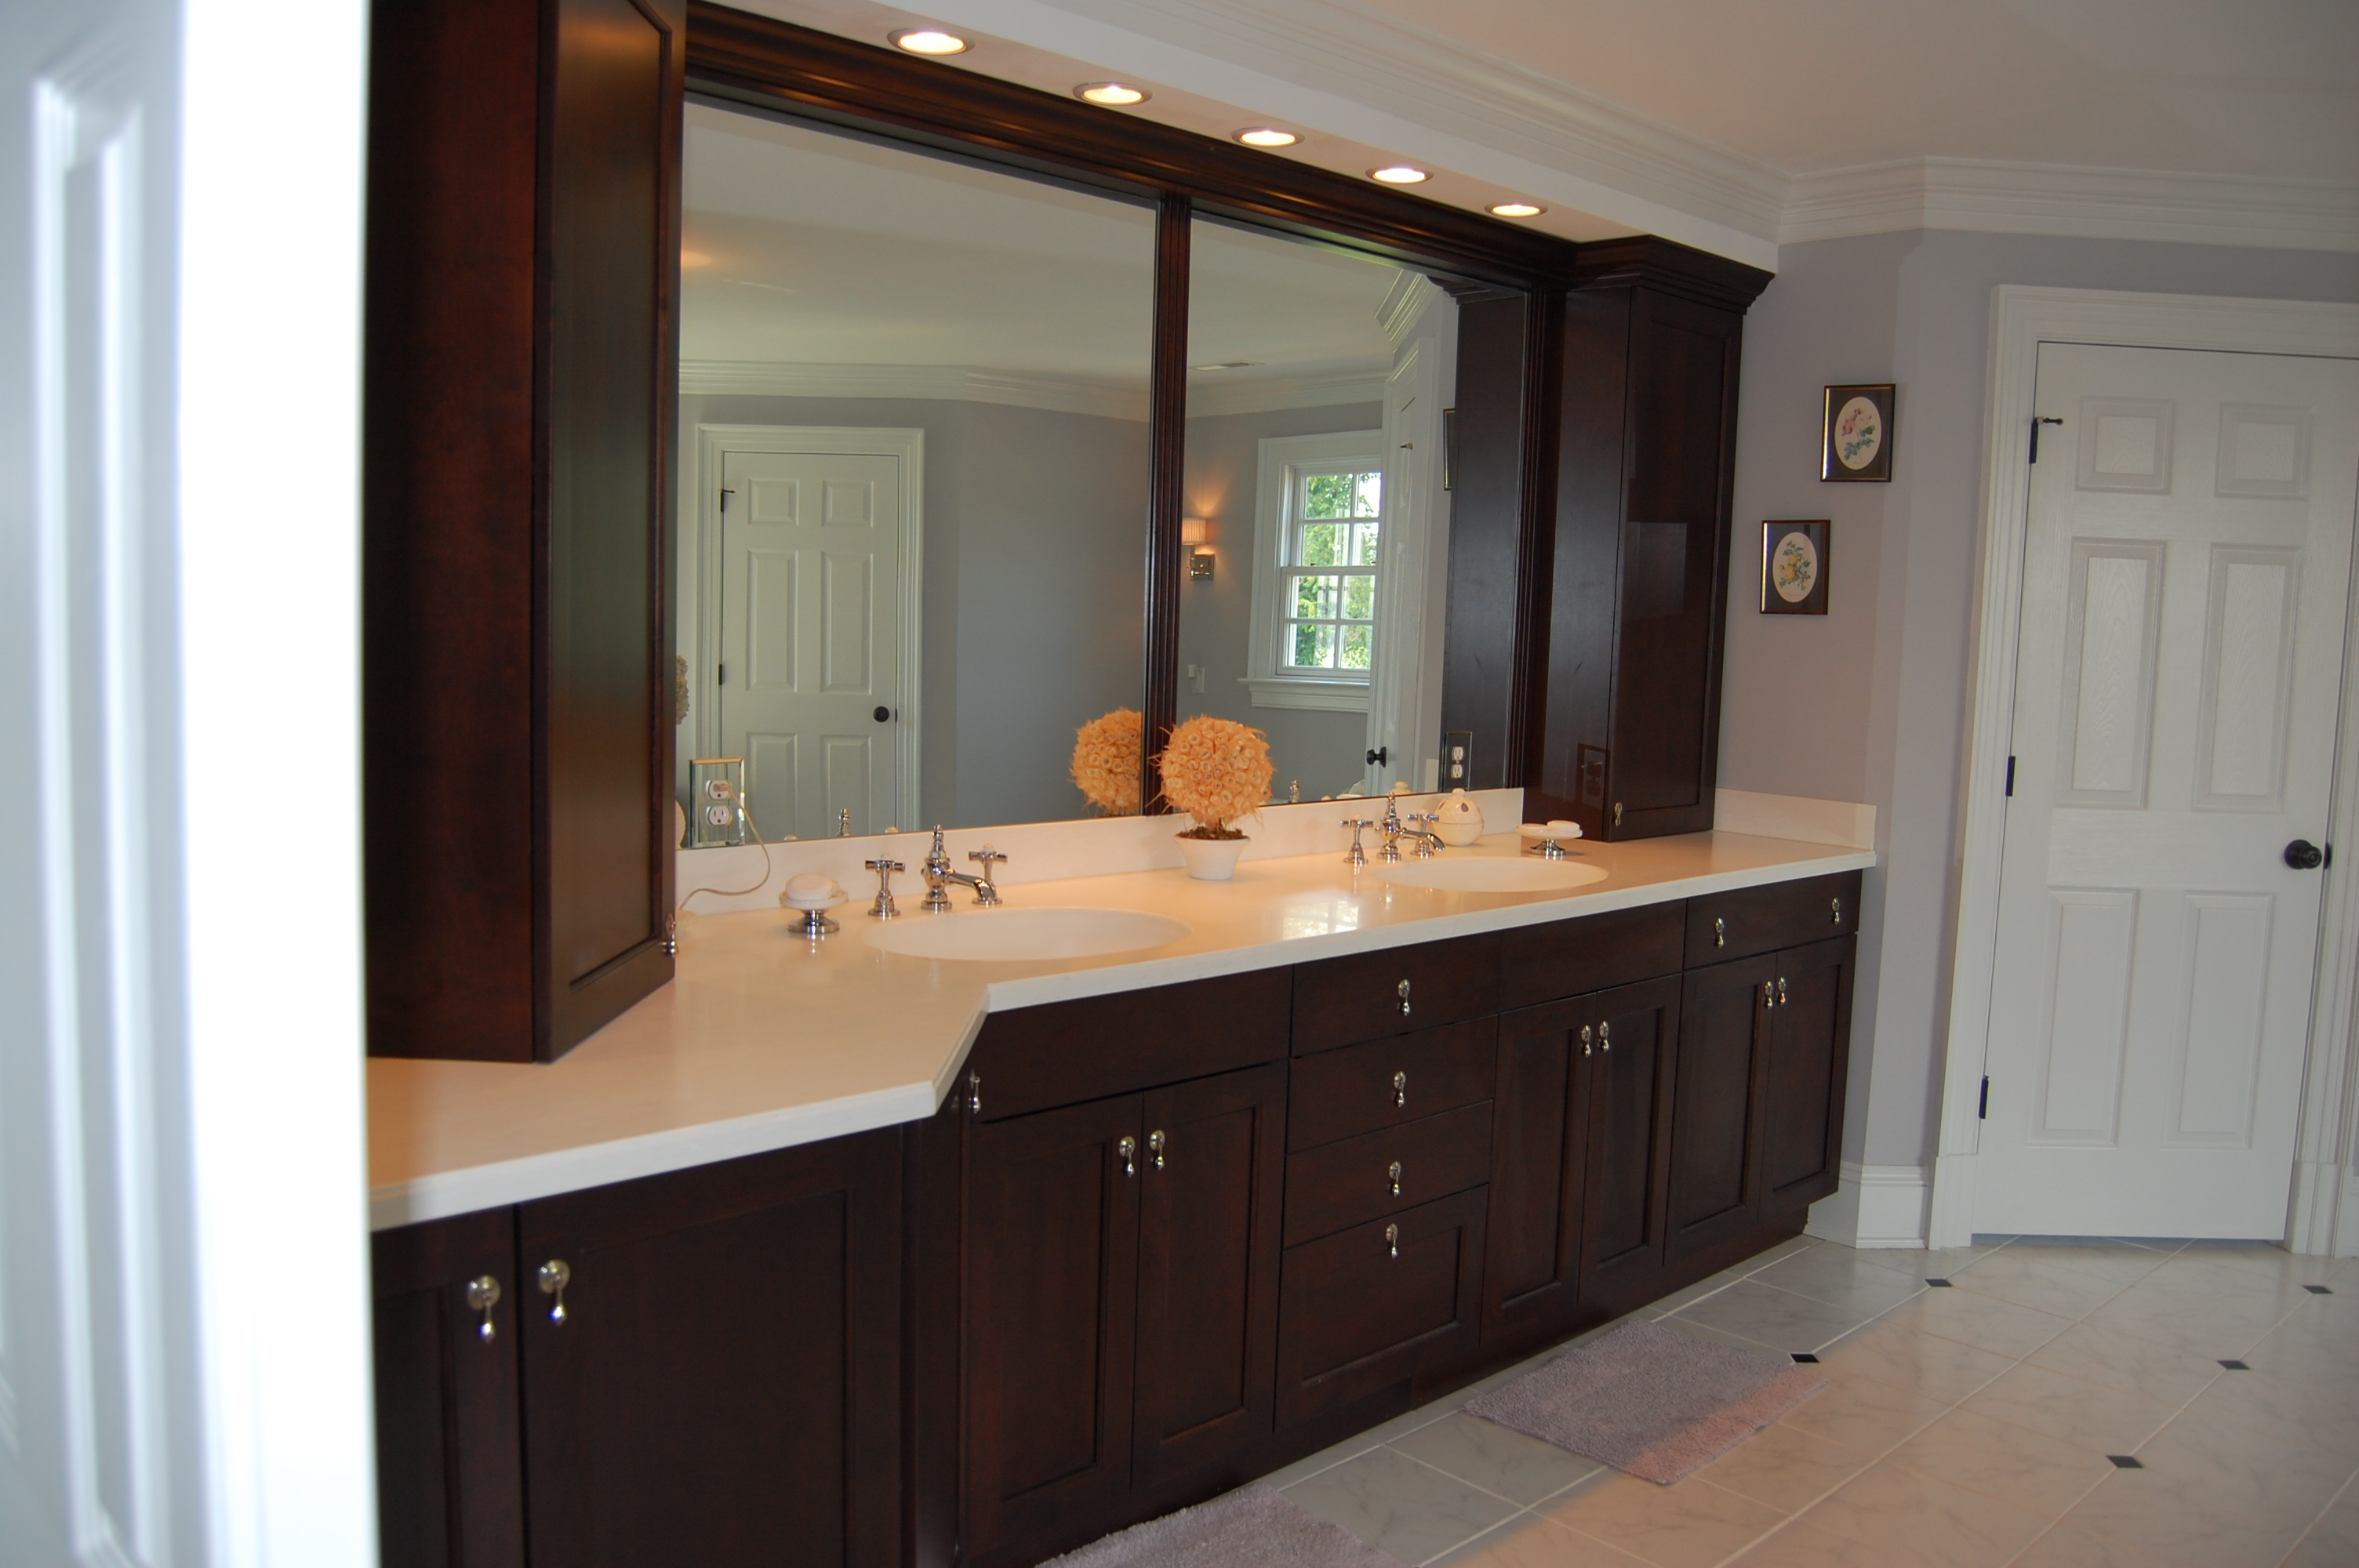 Portfolio Classic Kitchens Of Virginia - Bathroom remodeling midlothian va